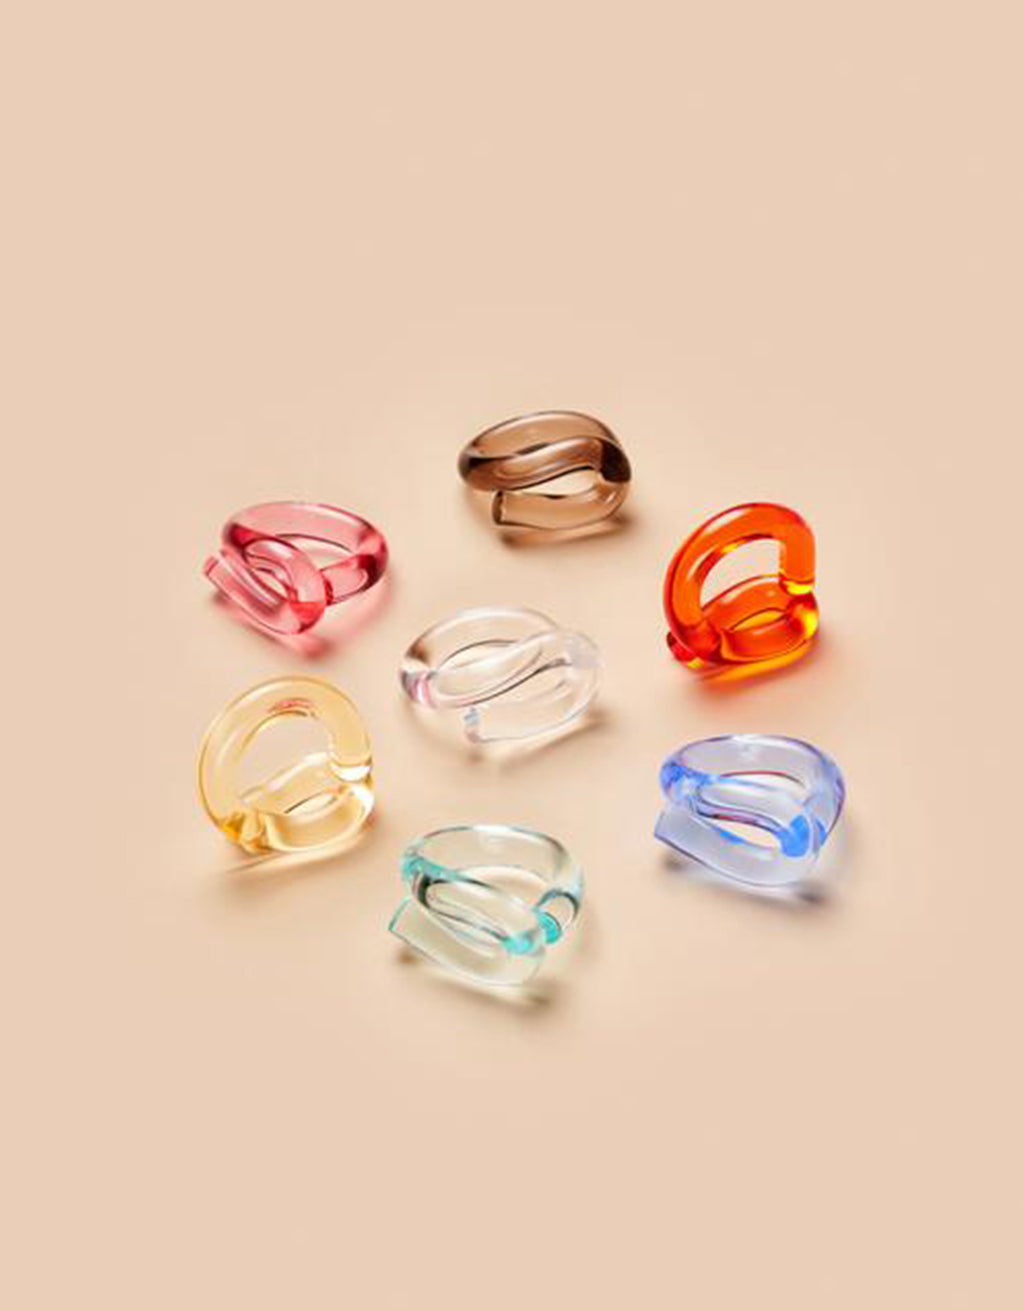 Colourful Loop Rings by Corey Moranis on soft pink background. Available at FAWN Toronto.